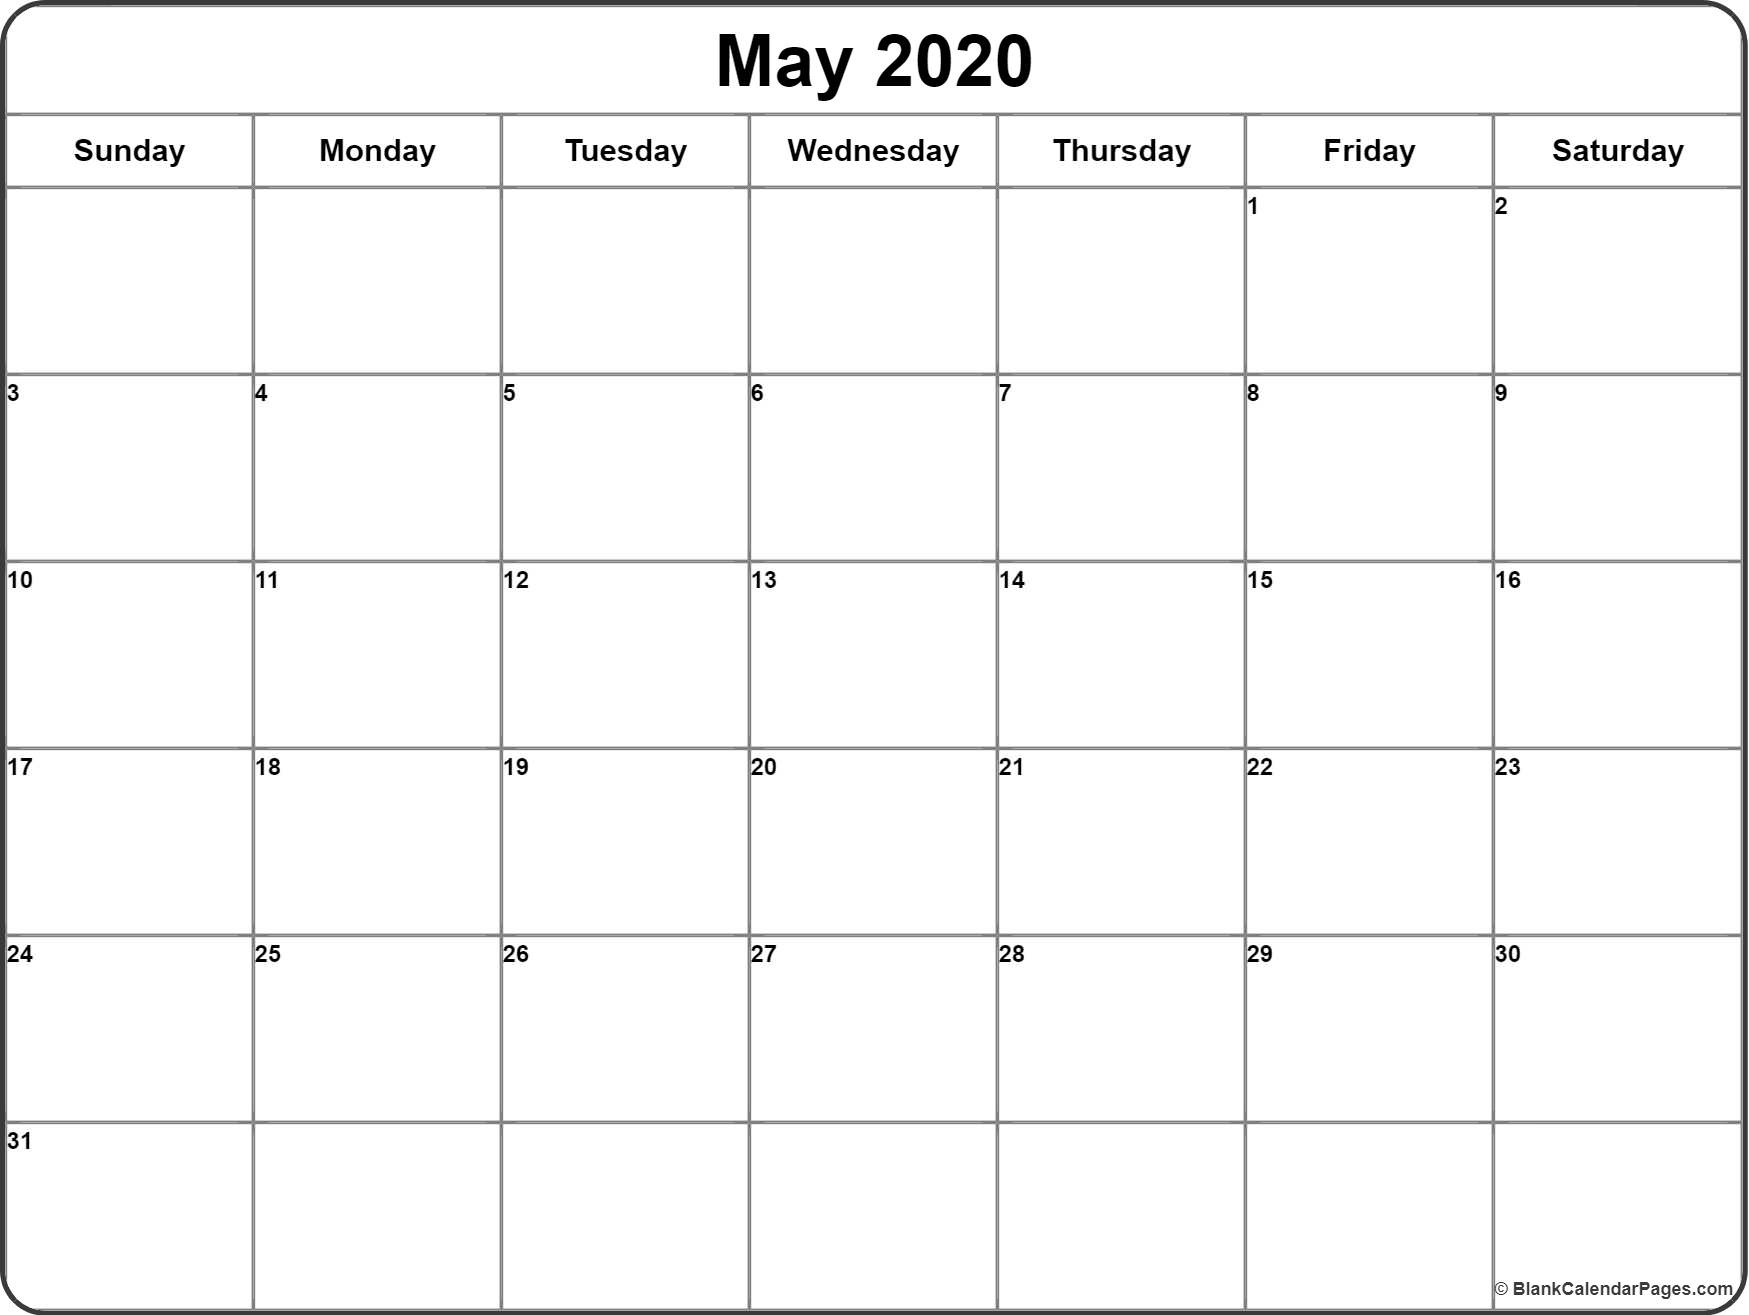 May 2020 Calendar | Free Printable Monthly Calendars pertaining to 2020 Blank Calendar Pages